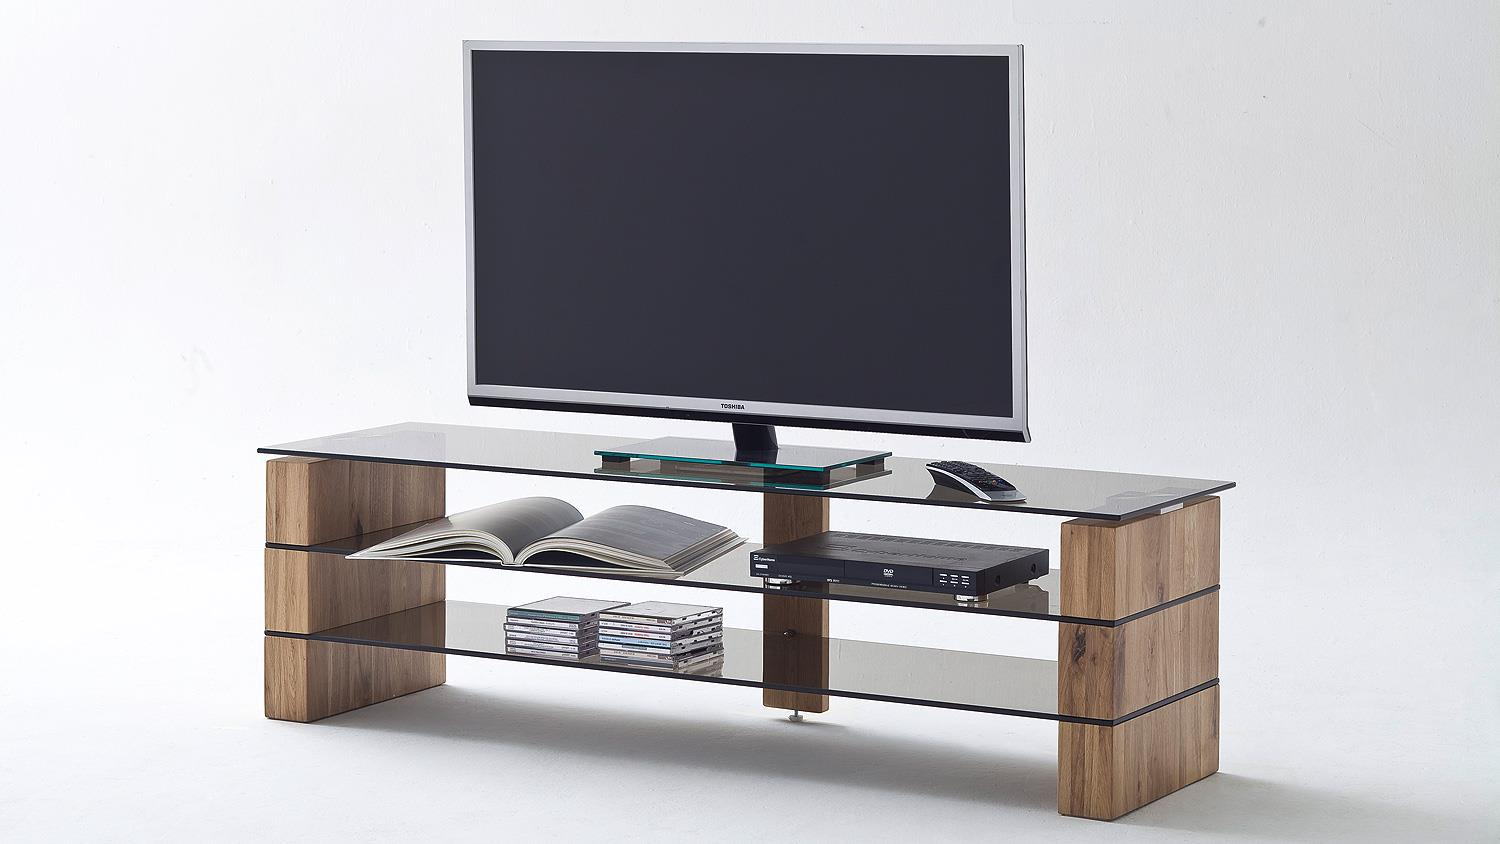 Tv Board Lowboard Tv Rack Kari Tv Board Lowboard In Eiche Massiv Glas Grau 160